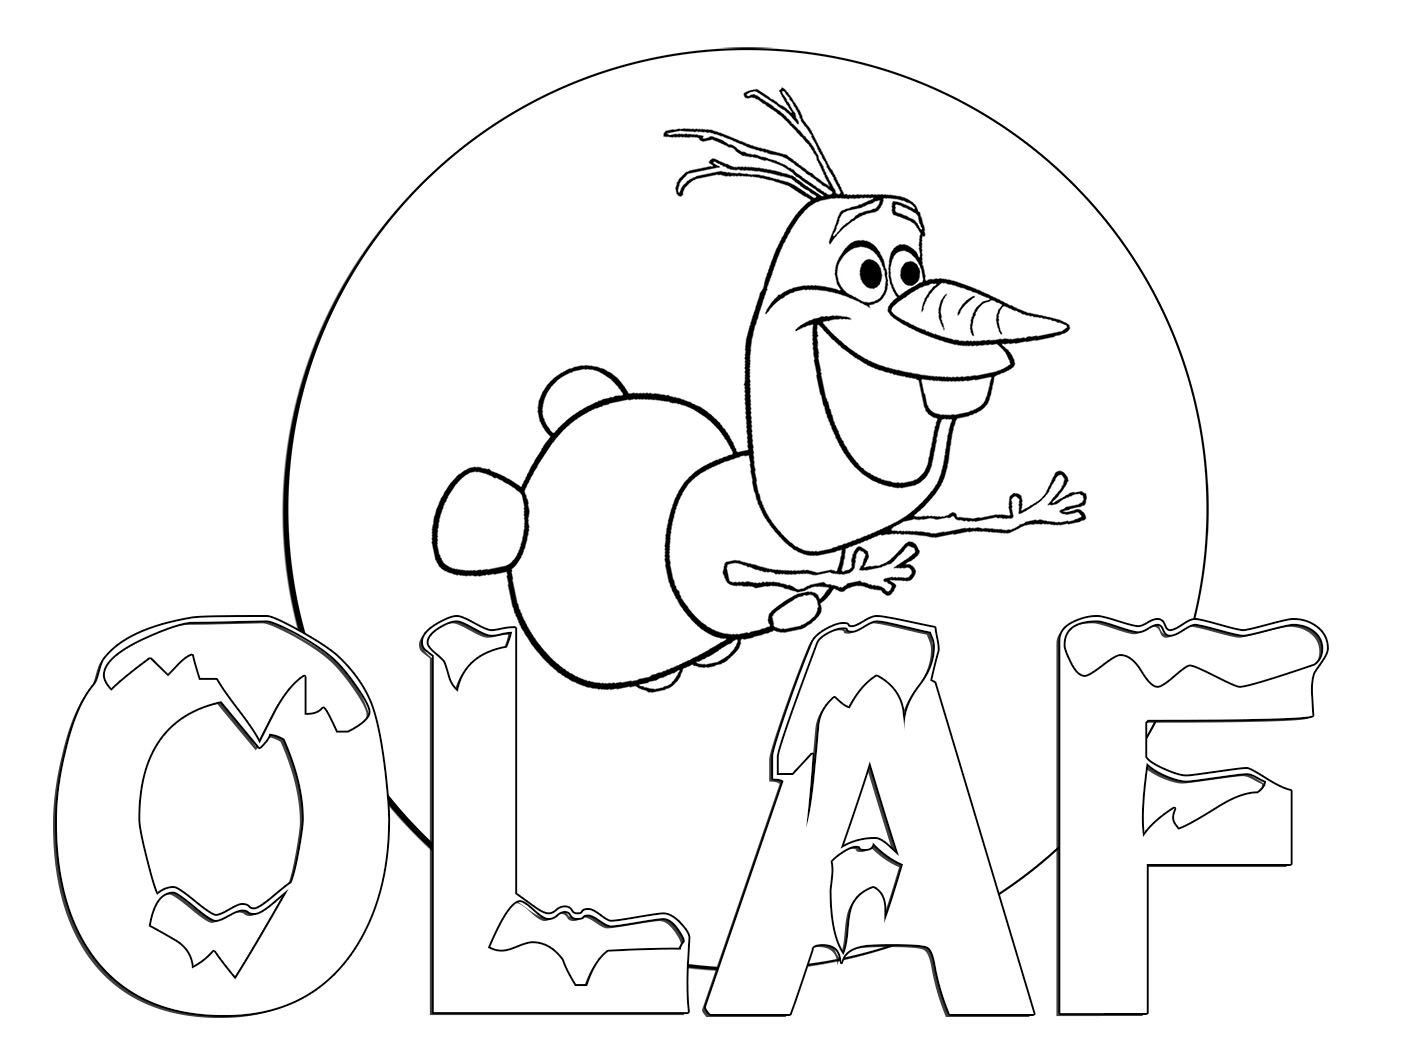 Free disney coloring pages to print out - Disney Coloring Pages Frozen Free Online Printable Coloring Pages Sheets For Kids Get The Latest Free Disney Coloring Pages Frozen Images